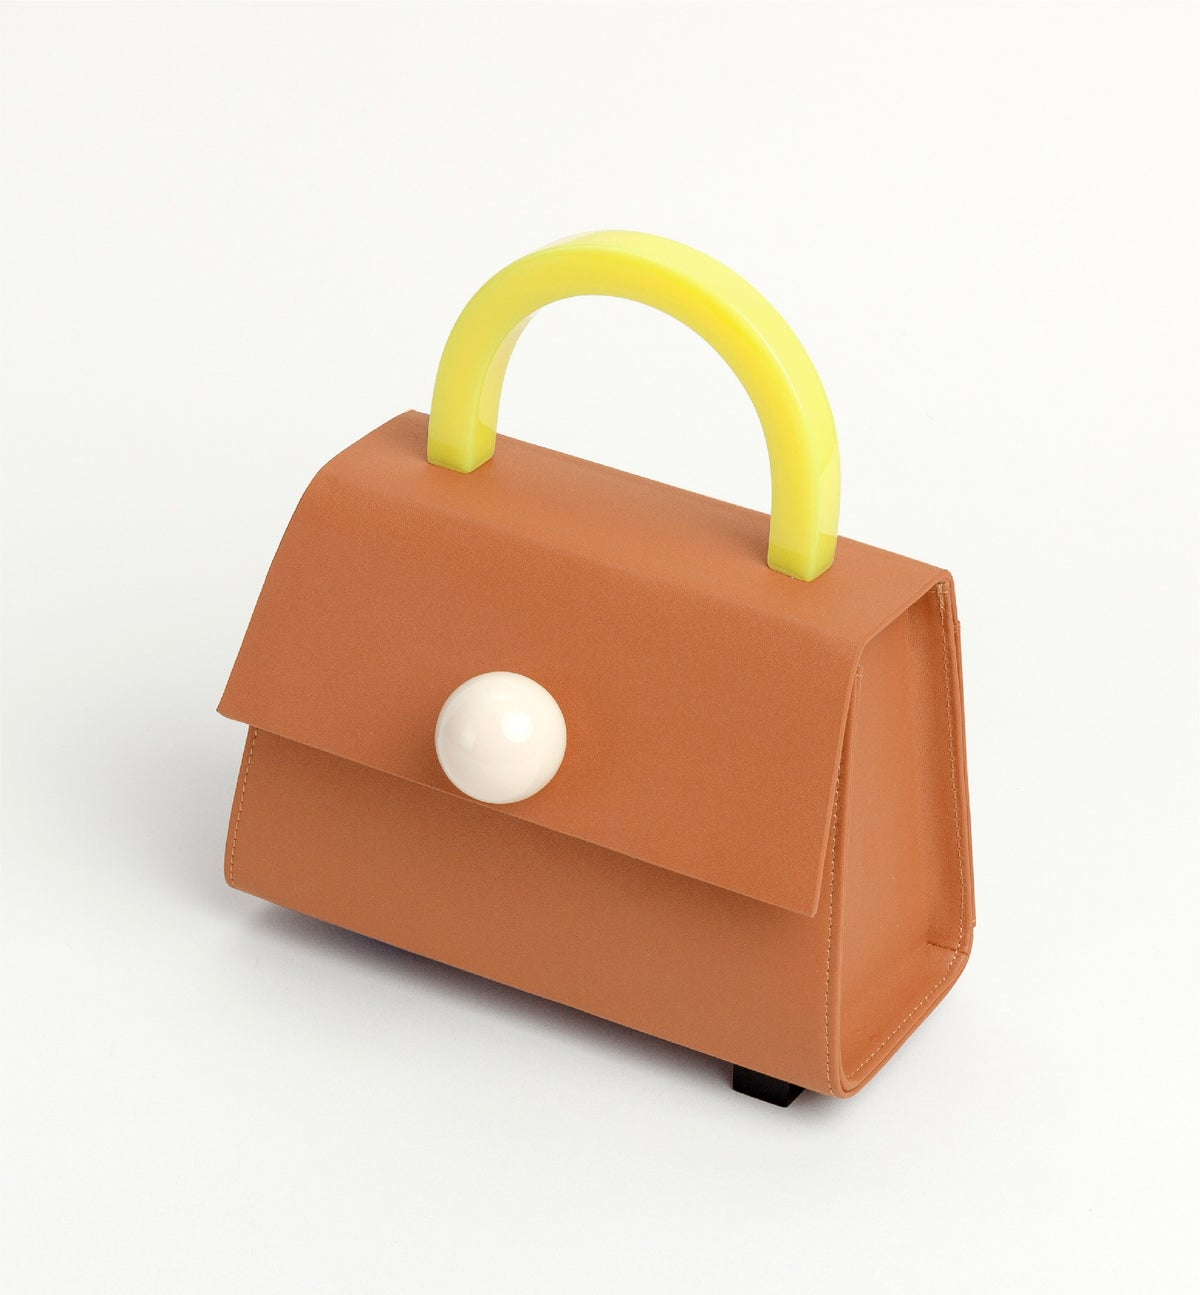 Image of Diva satchel bag • Camel with strap - Limited quantities